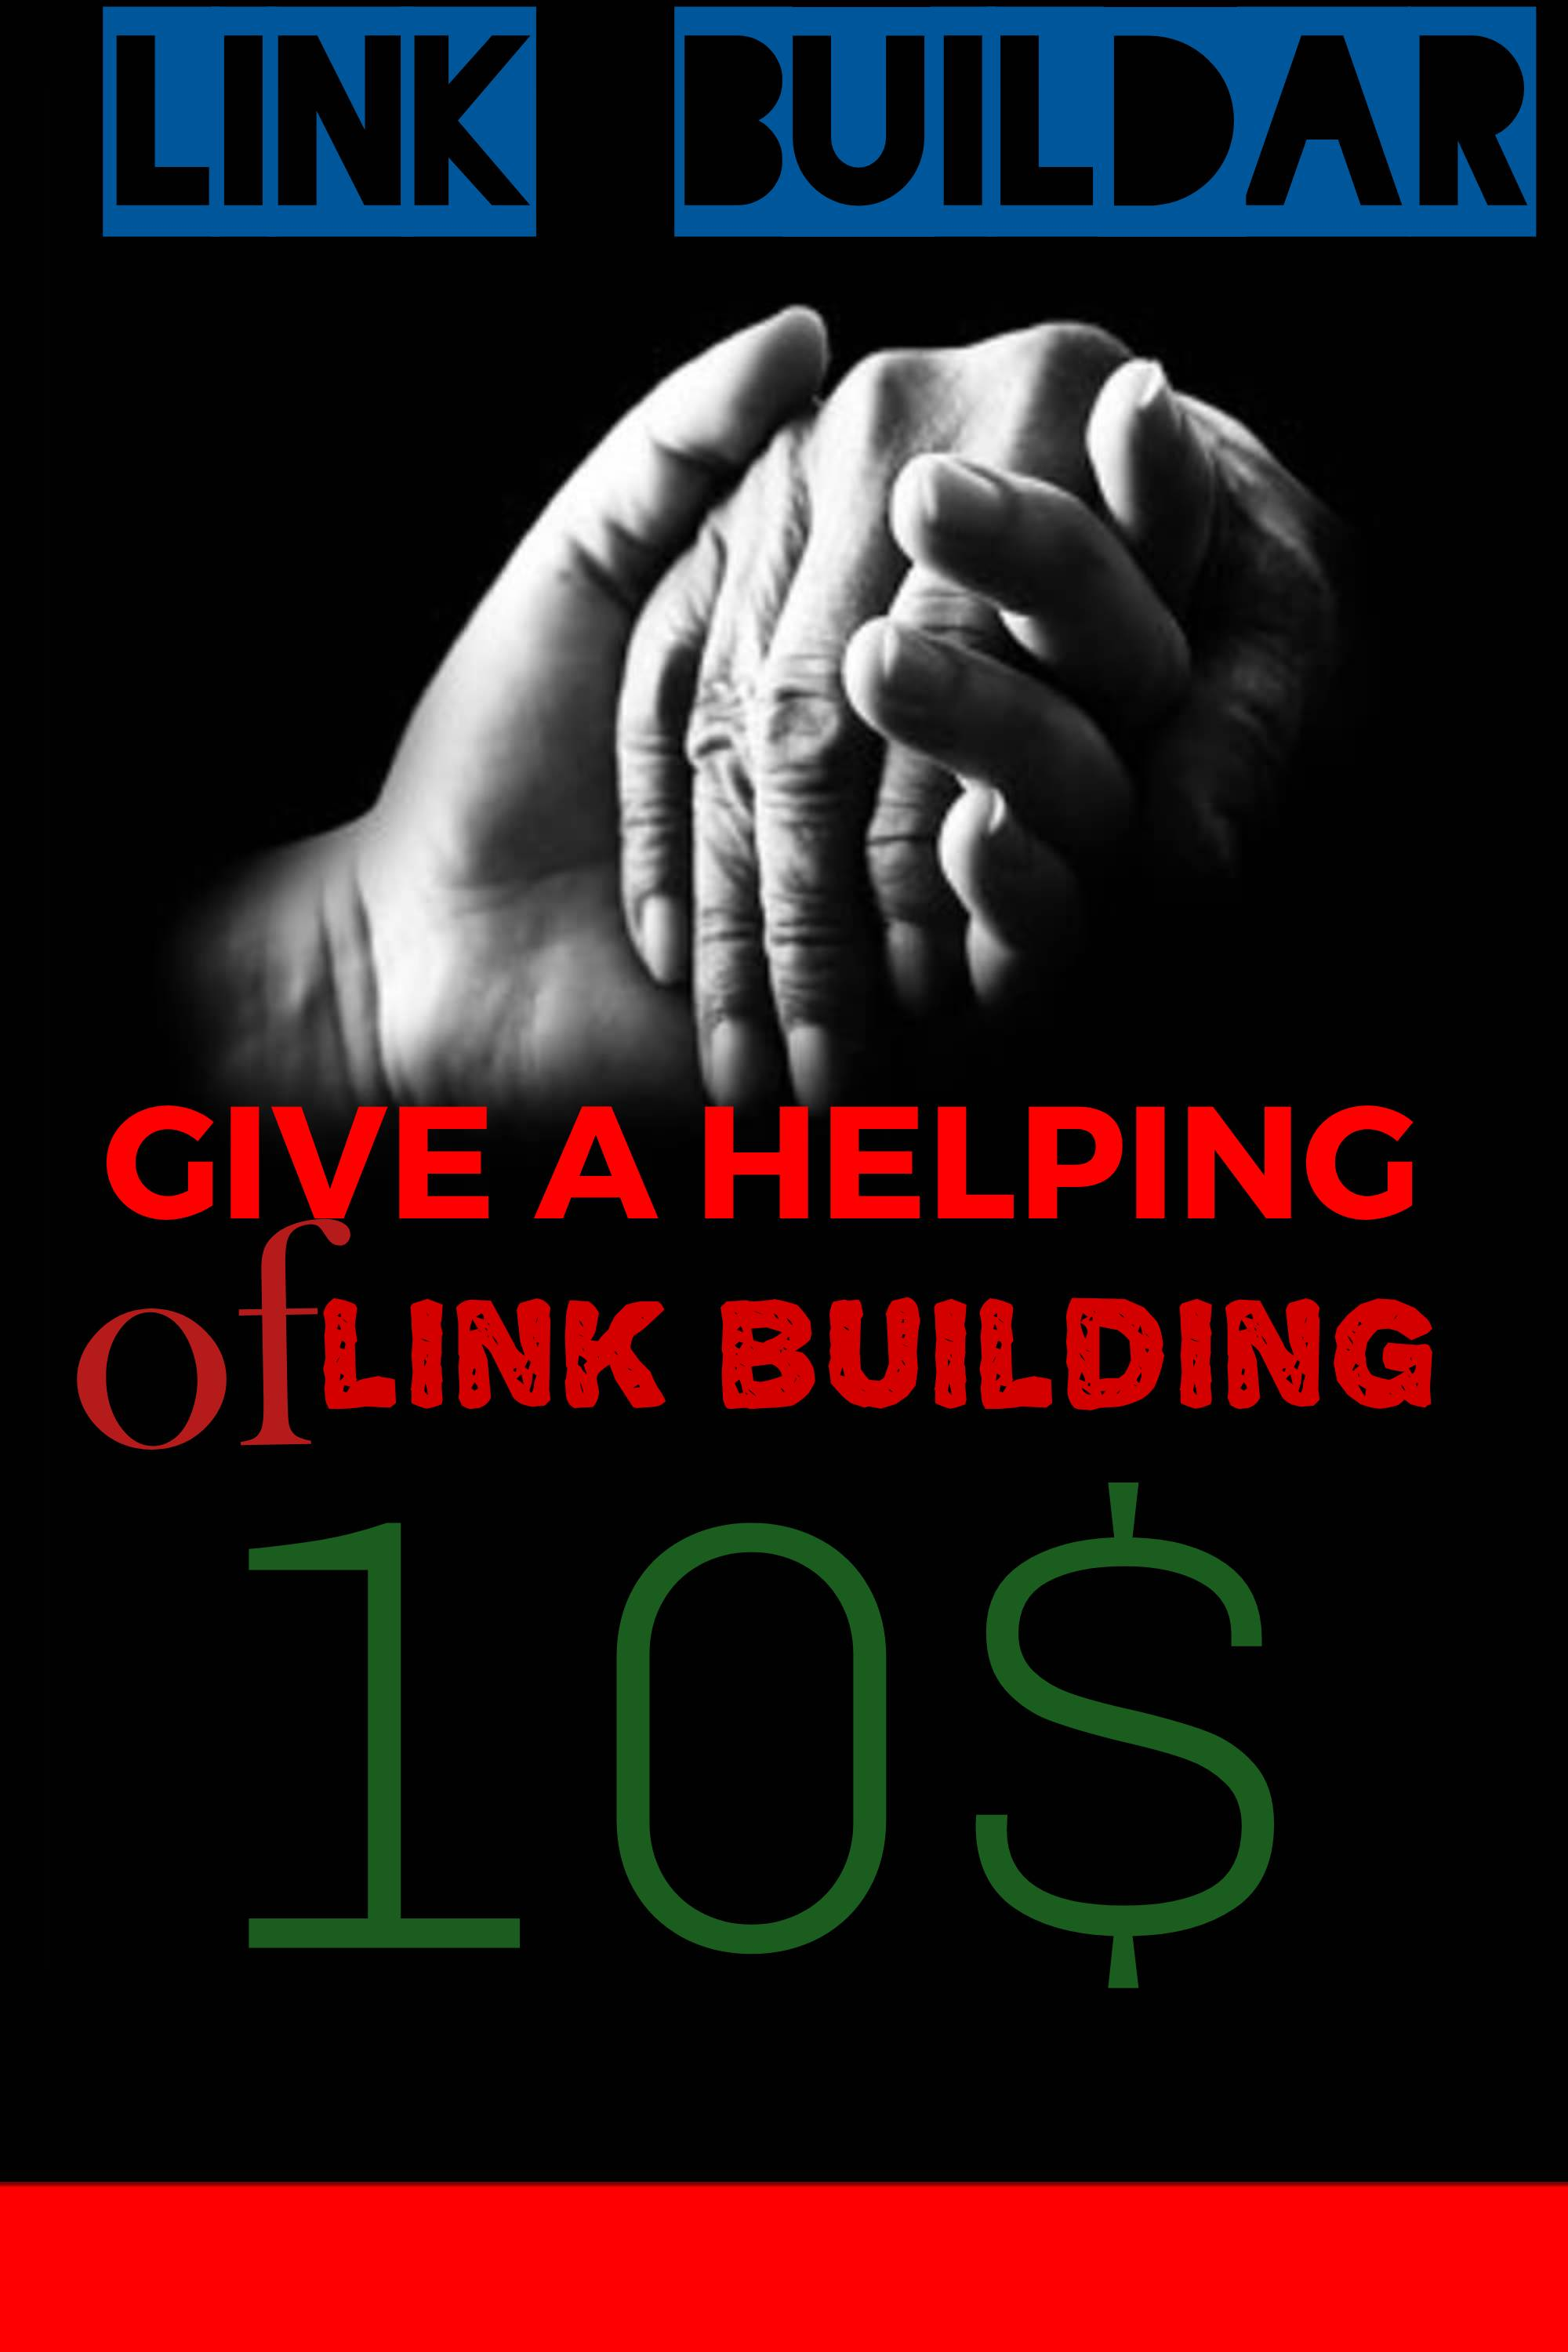 Iink builder software this helps you to link build